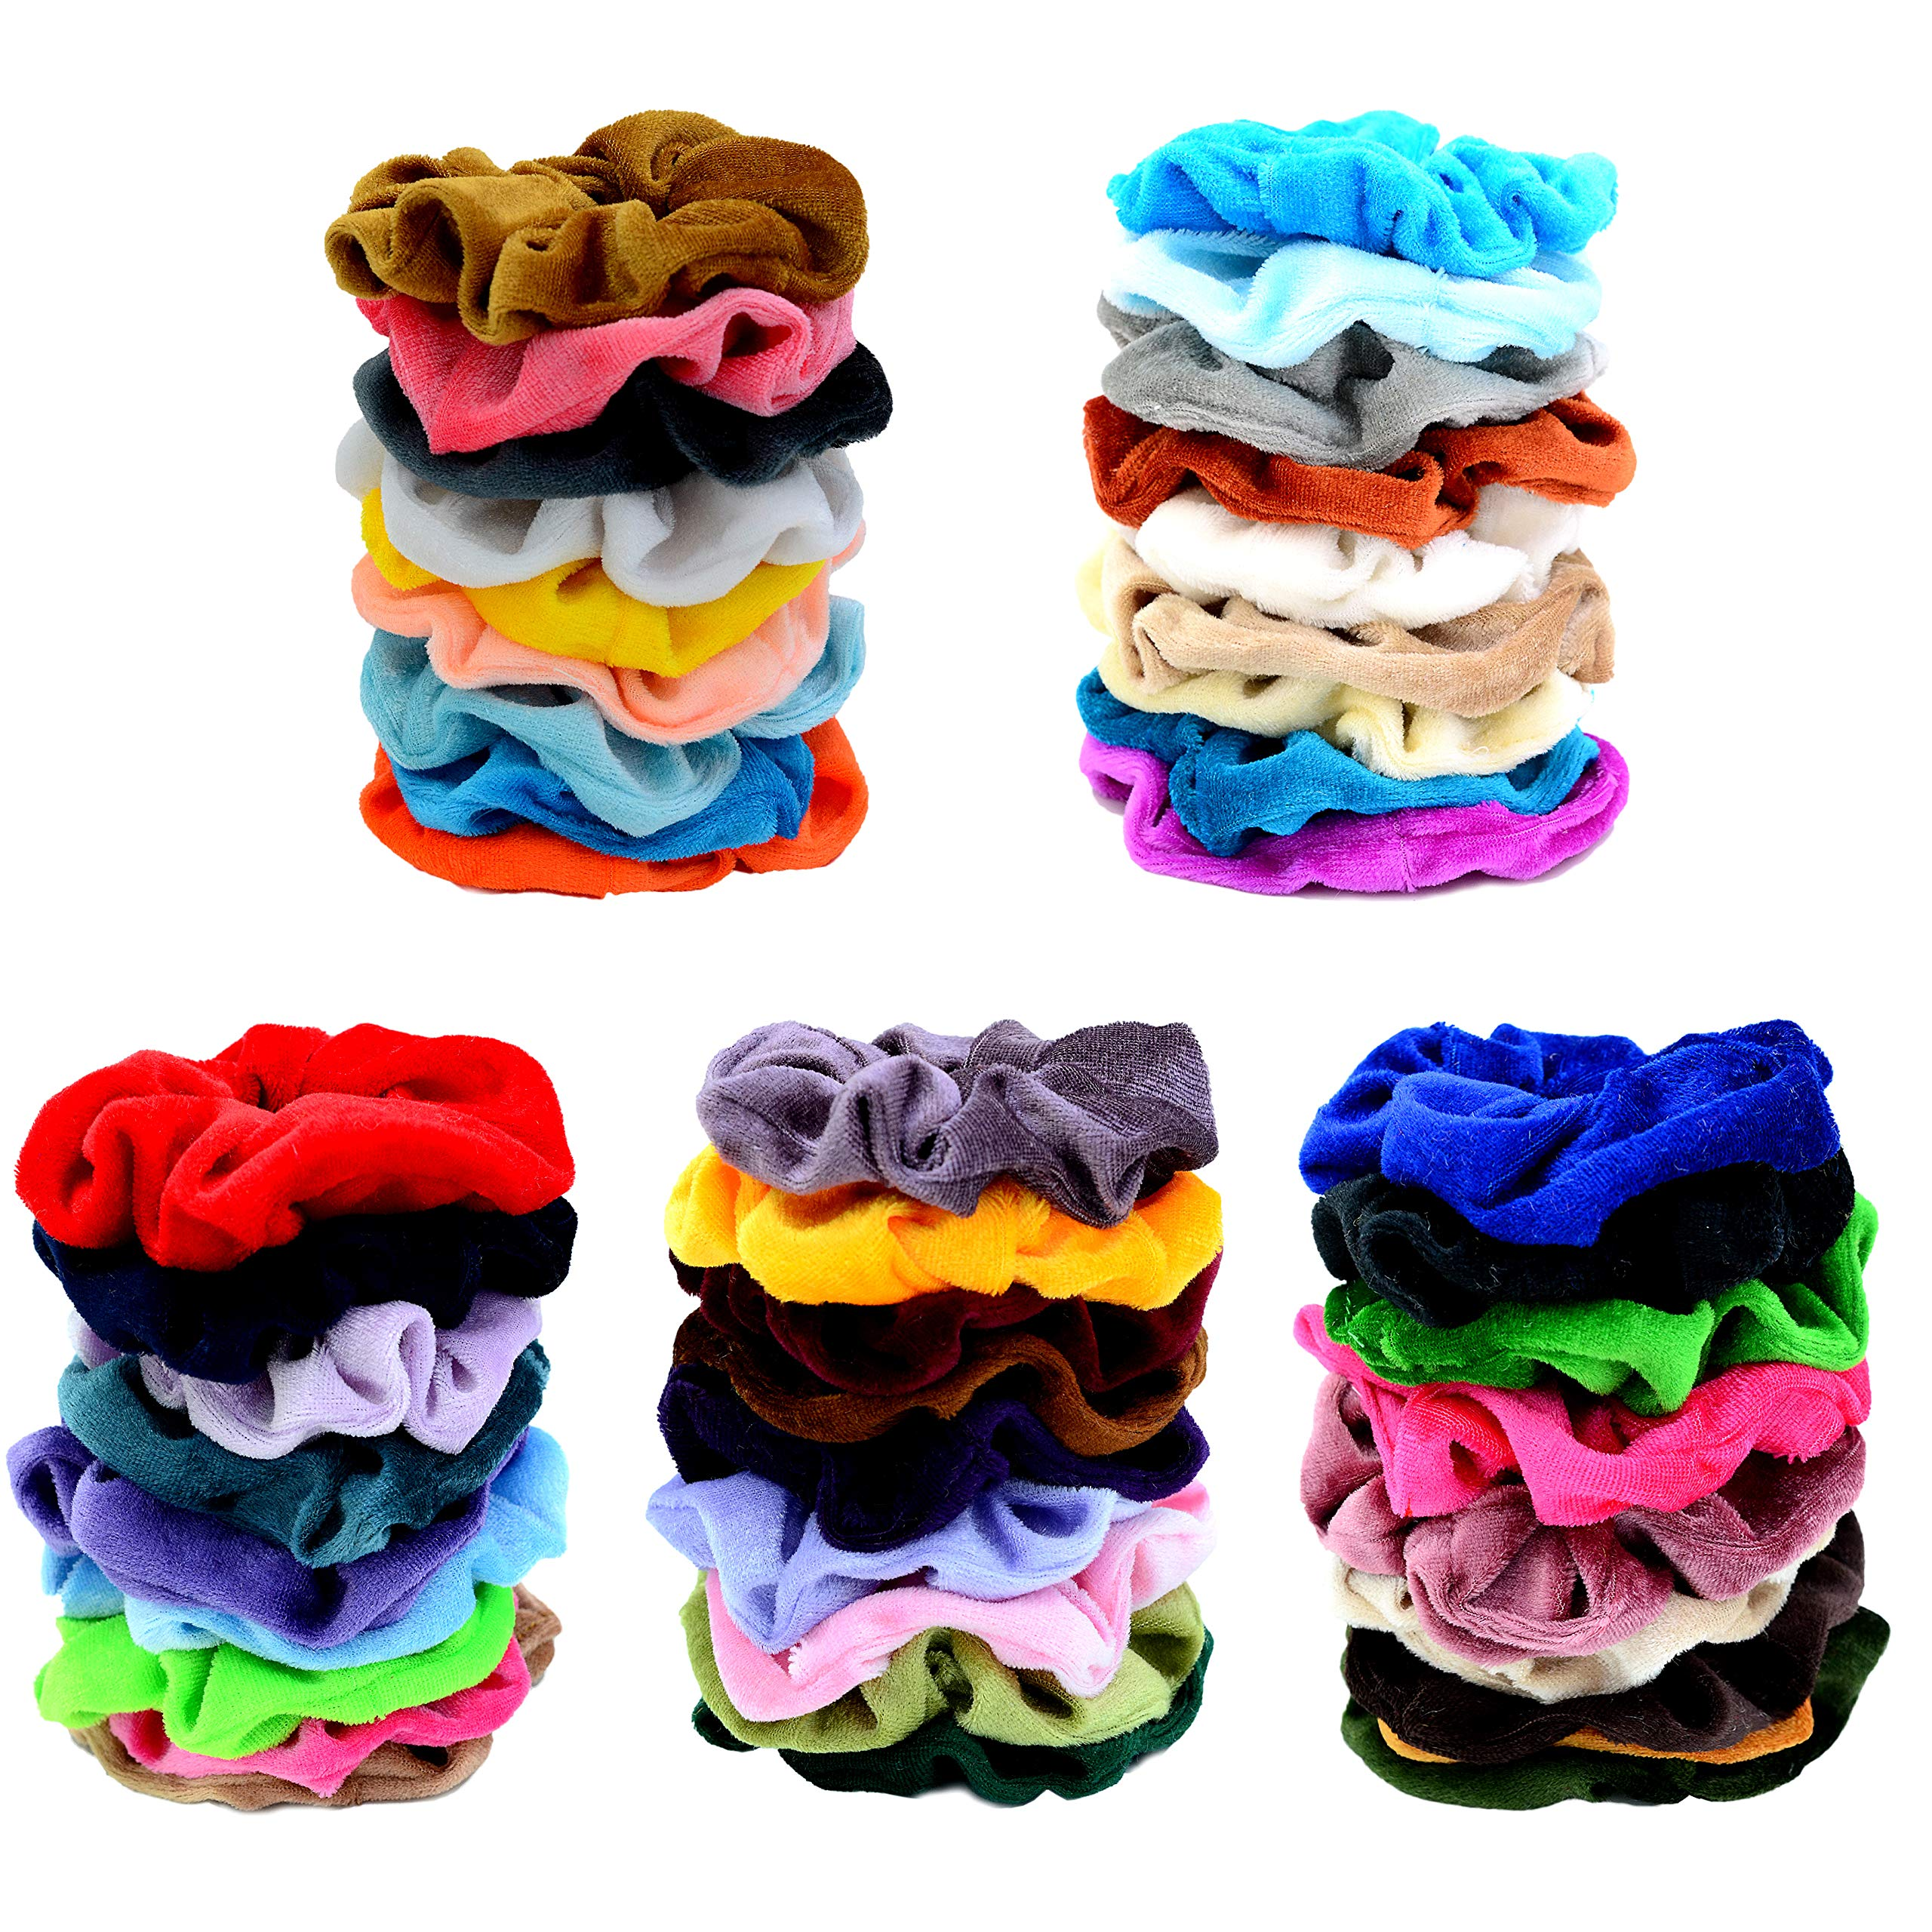 Chloven 45 Pcs Hair Scrunchies Velvet Elastics Bobbles Hair Bands Scrunchy Hair Ties Ropes Scrunchie for Women Girls Hair Accessories- 45 Assorted Colors Scrunchies by Chloven (Image #2)